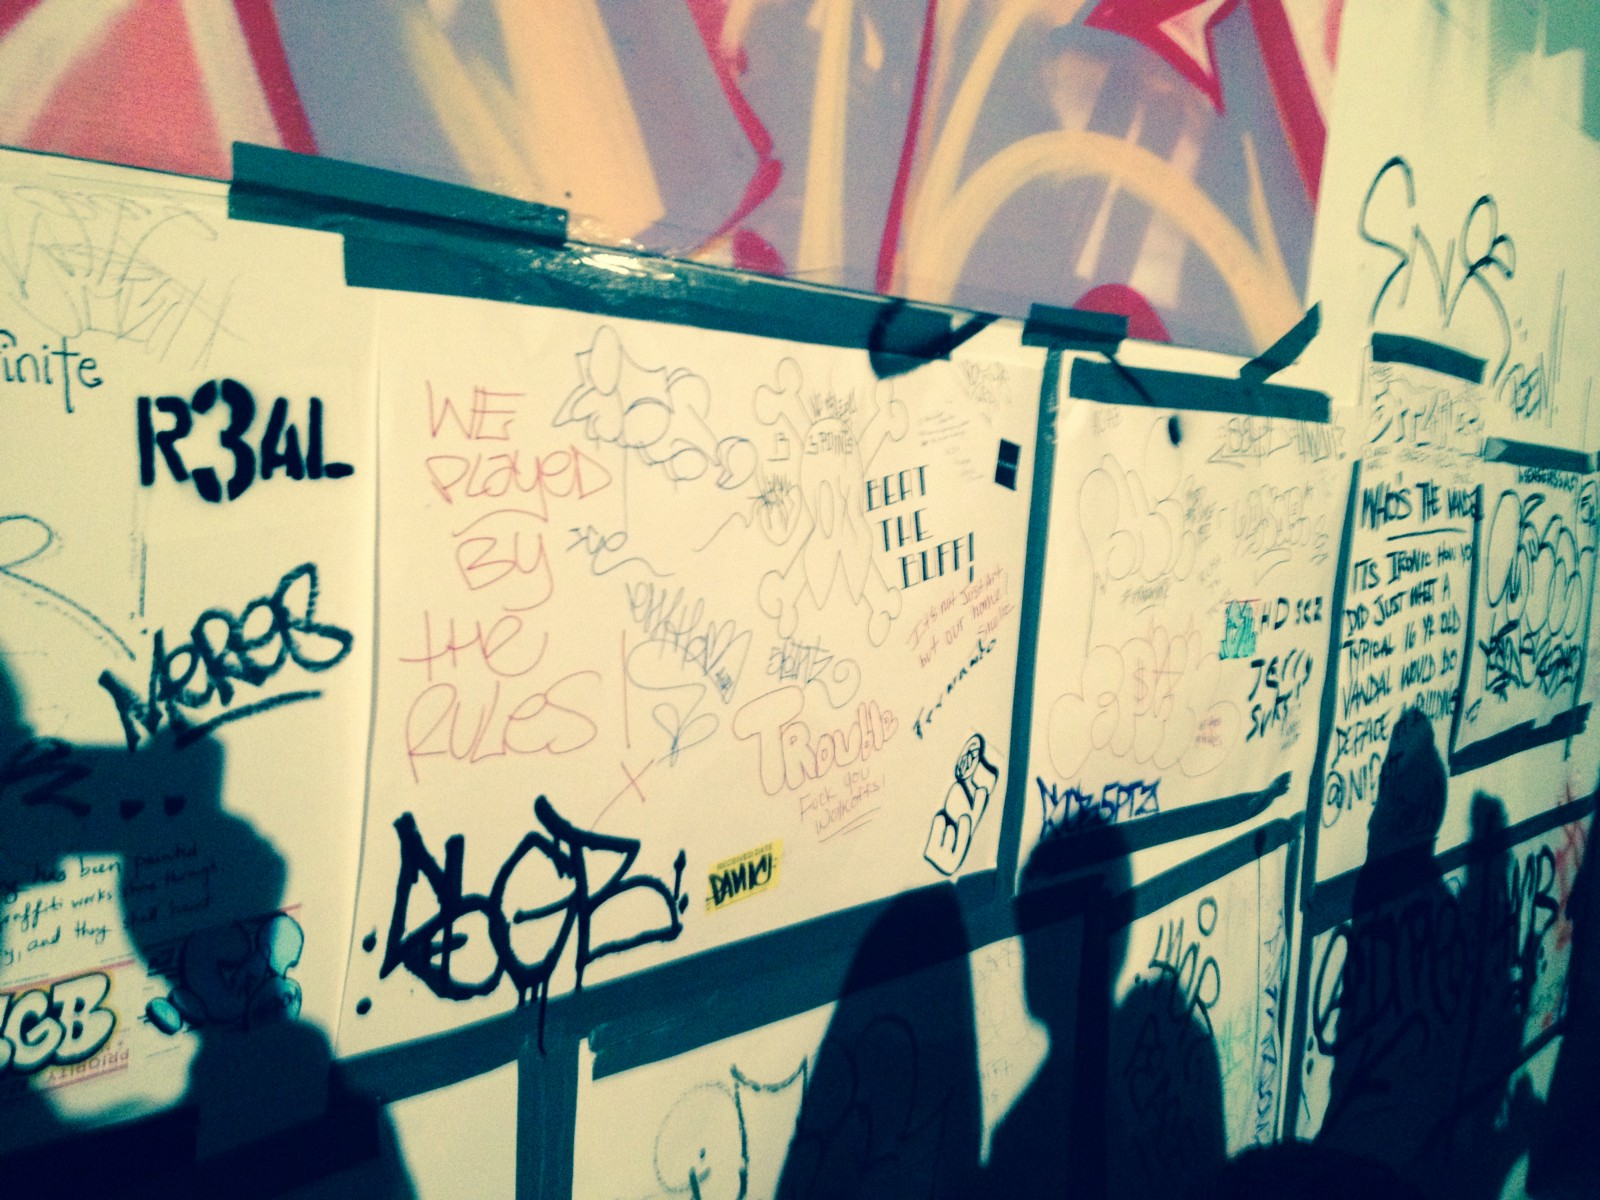 How a New York Developer Gentrified the #$&*!# Out of a Graffiti ...